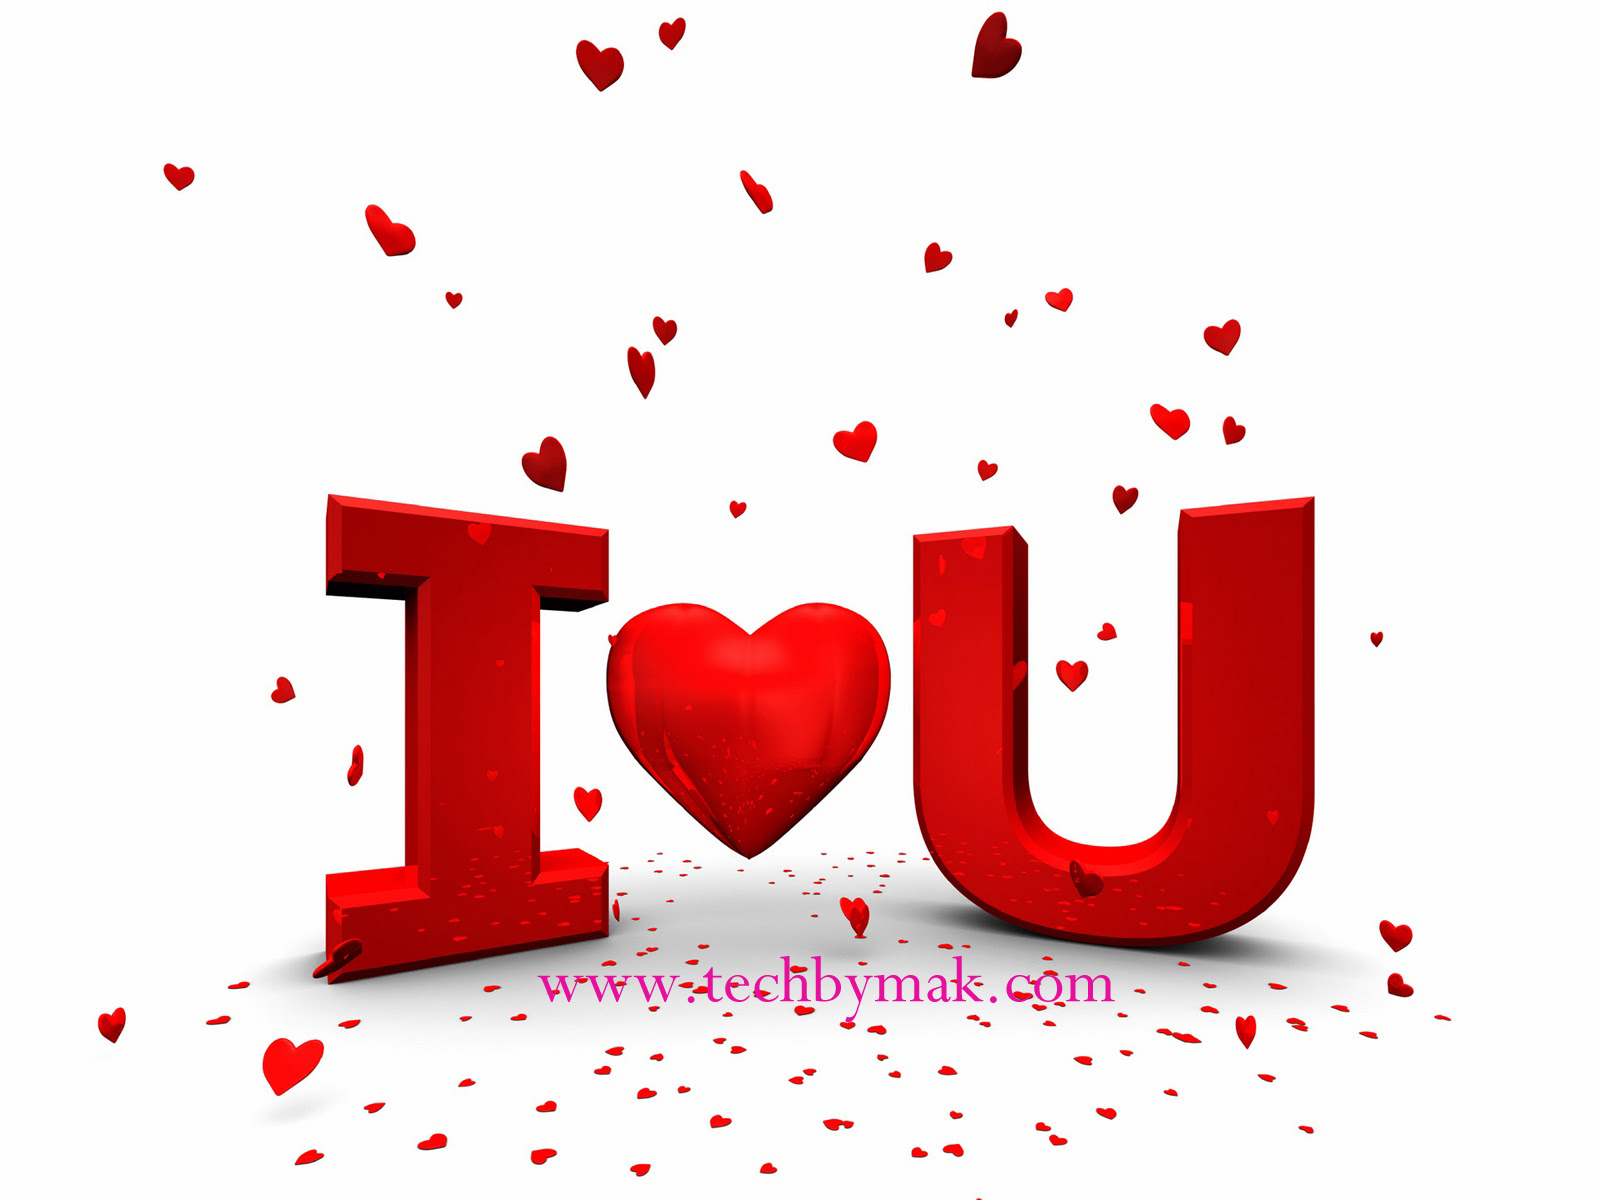 Http 2013 Valentinesday Blogspot Com 2013 01 Happy Valentines Day Pictures Photos Wallpapers Html